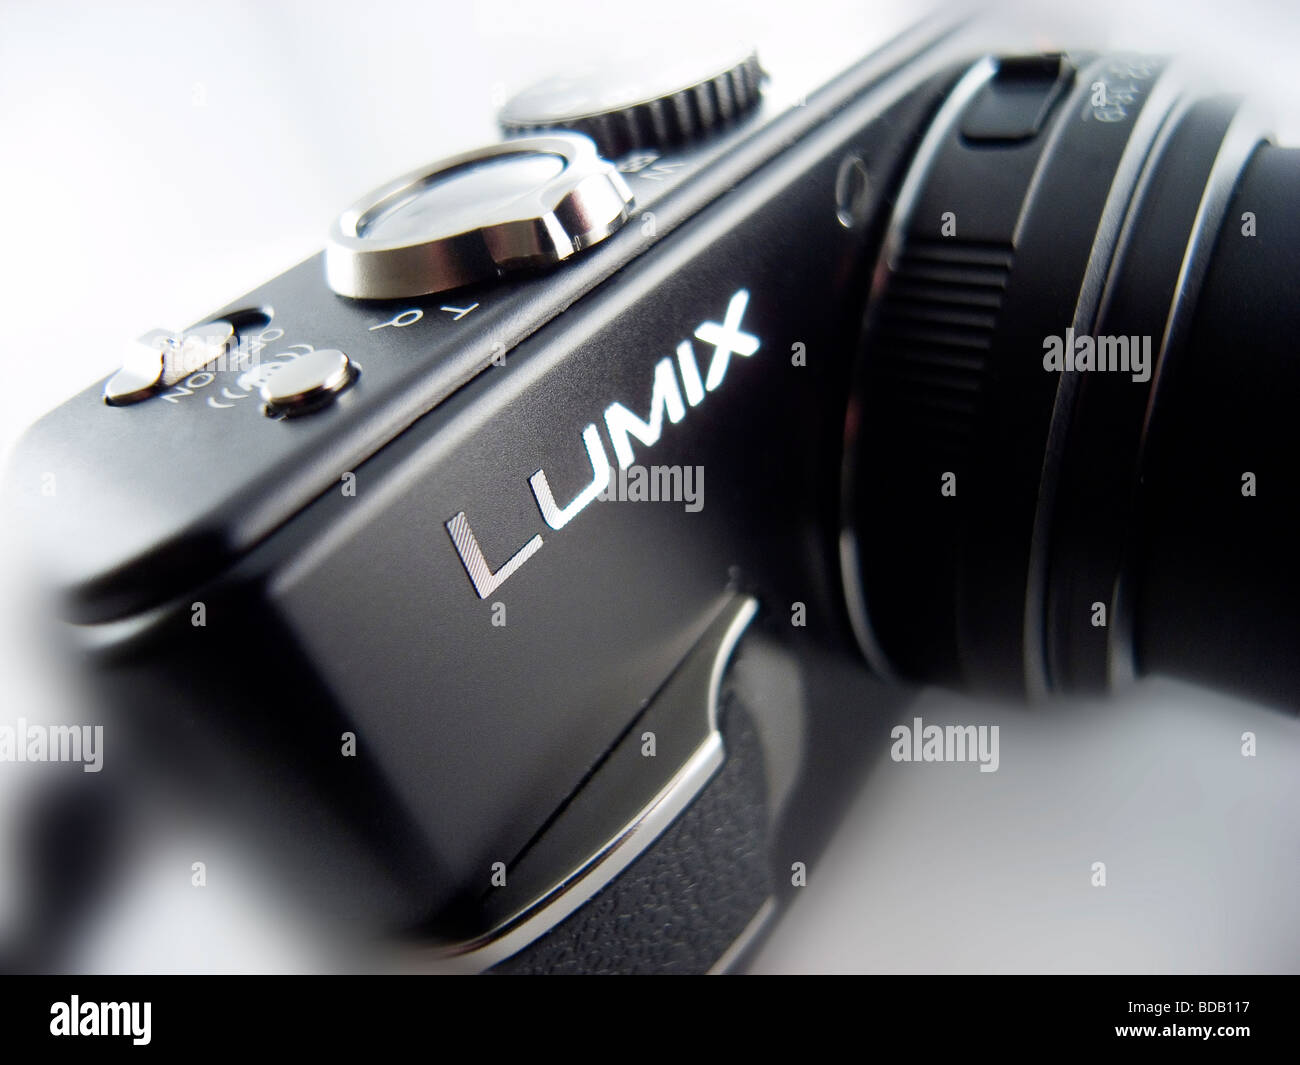 Panasonic Digital camera - Stock Image